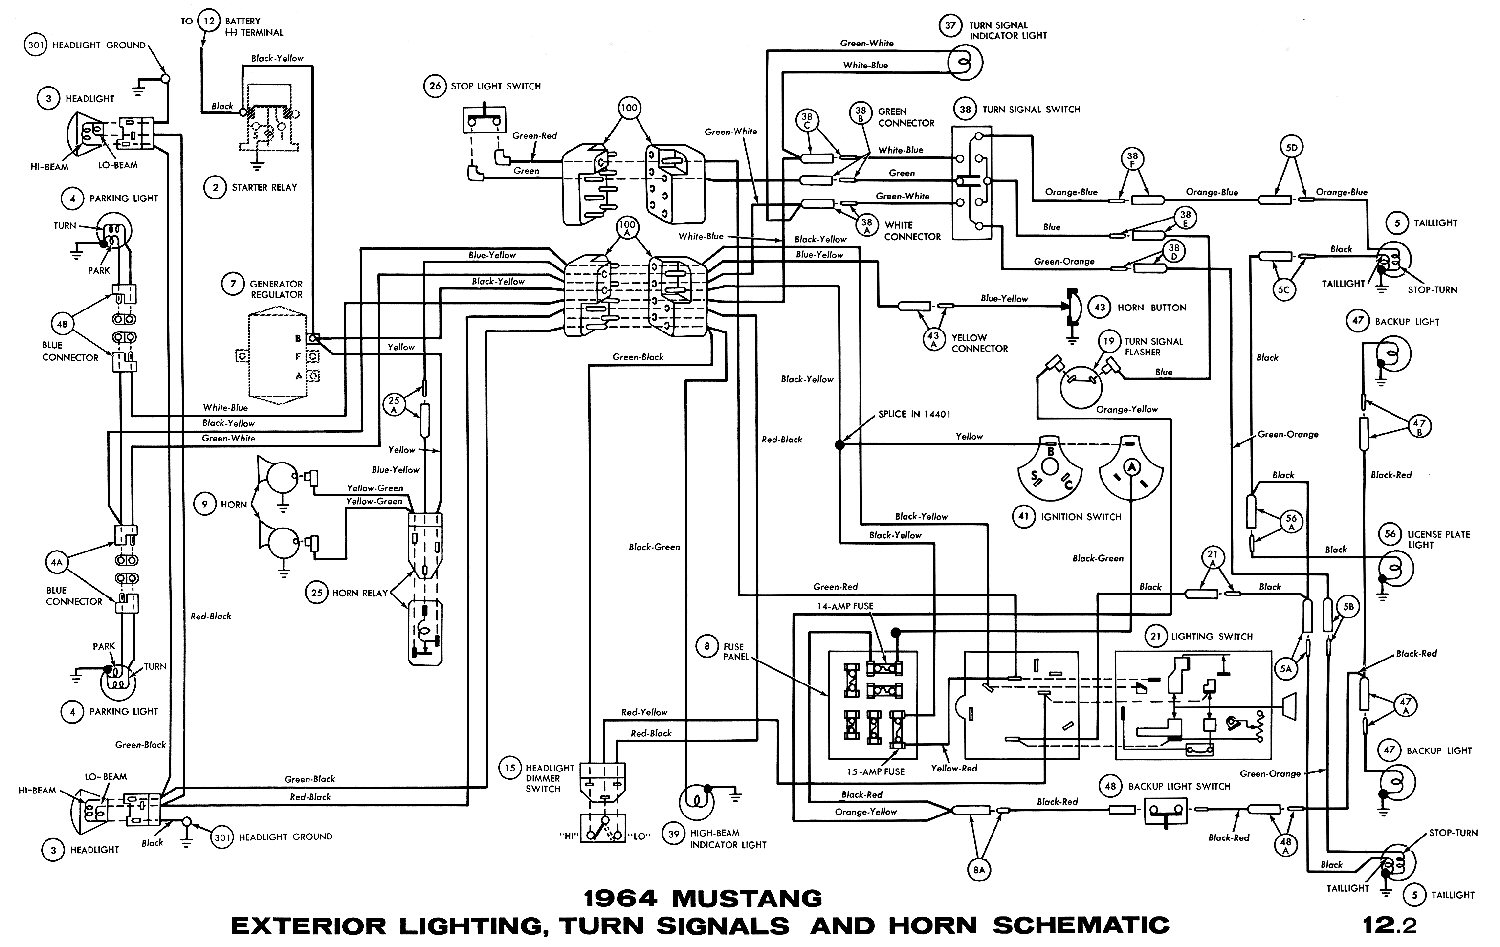 1964i 1964 mustang wiring diagrams average joe restoration 1967 mustang headlight switch wiring diagram at bayanpartner.co